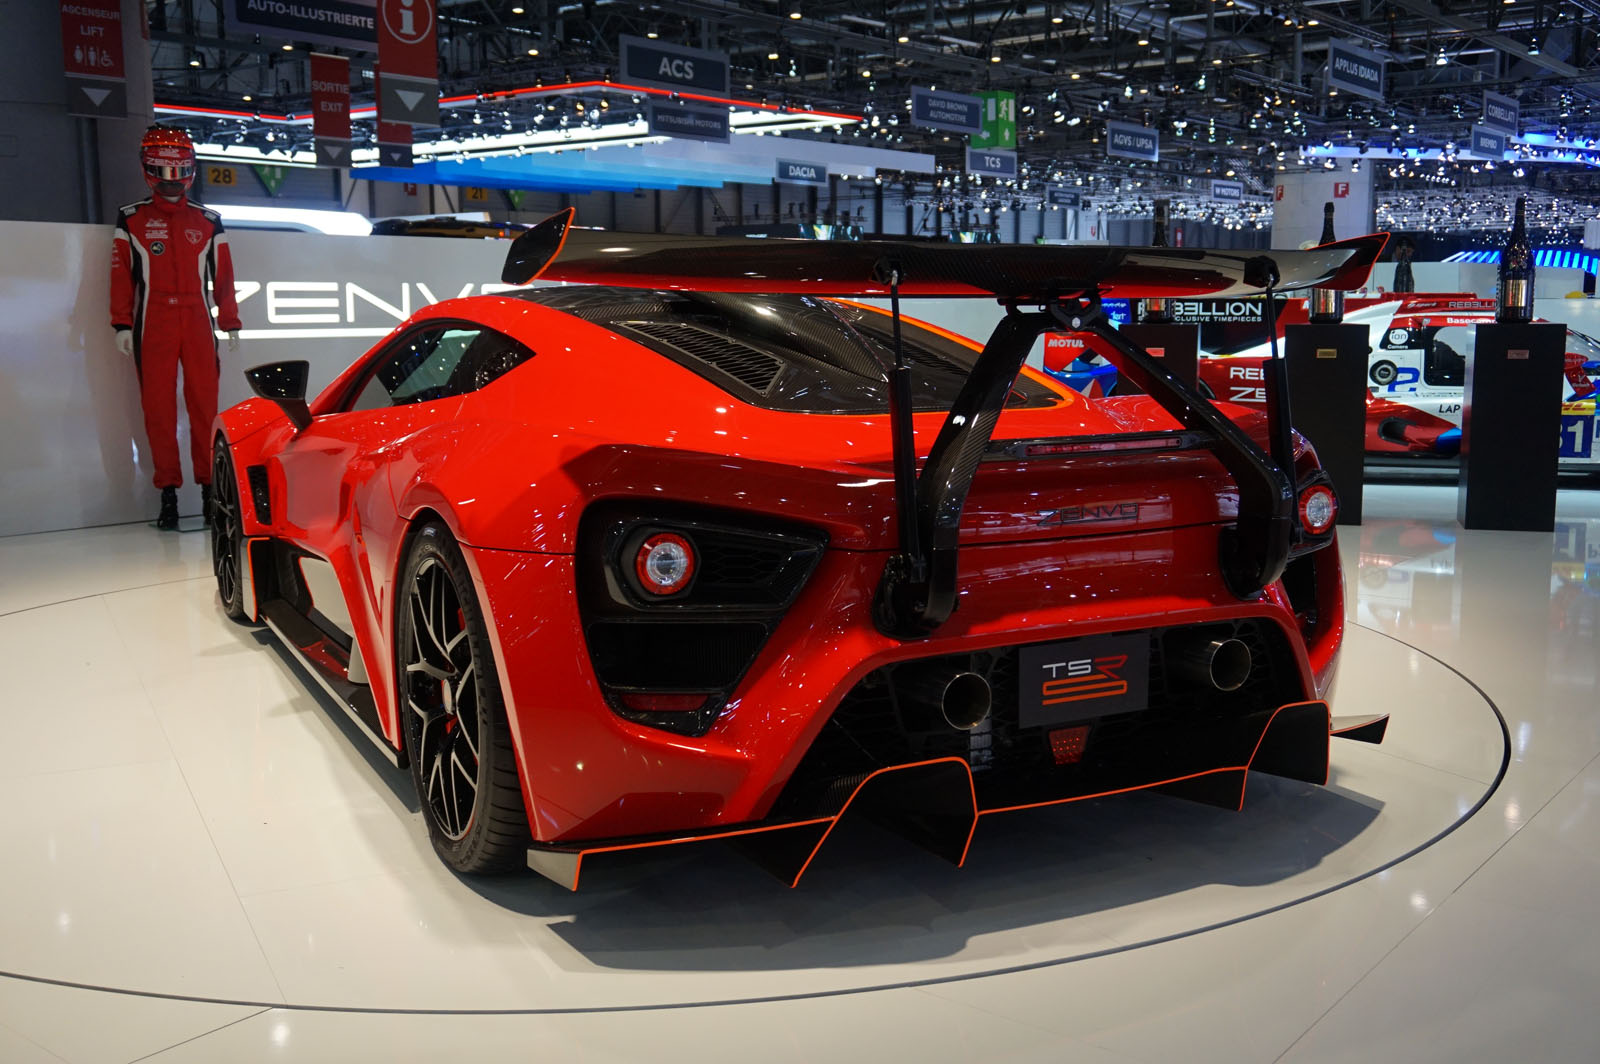 Top 5 Exotic Cars Of The 2018 Geneva Motor Show